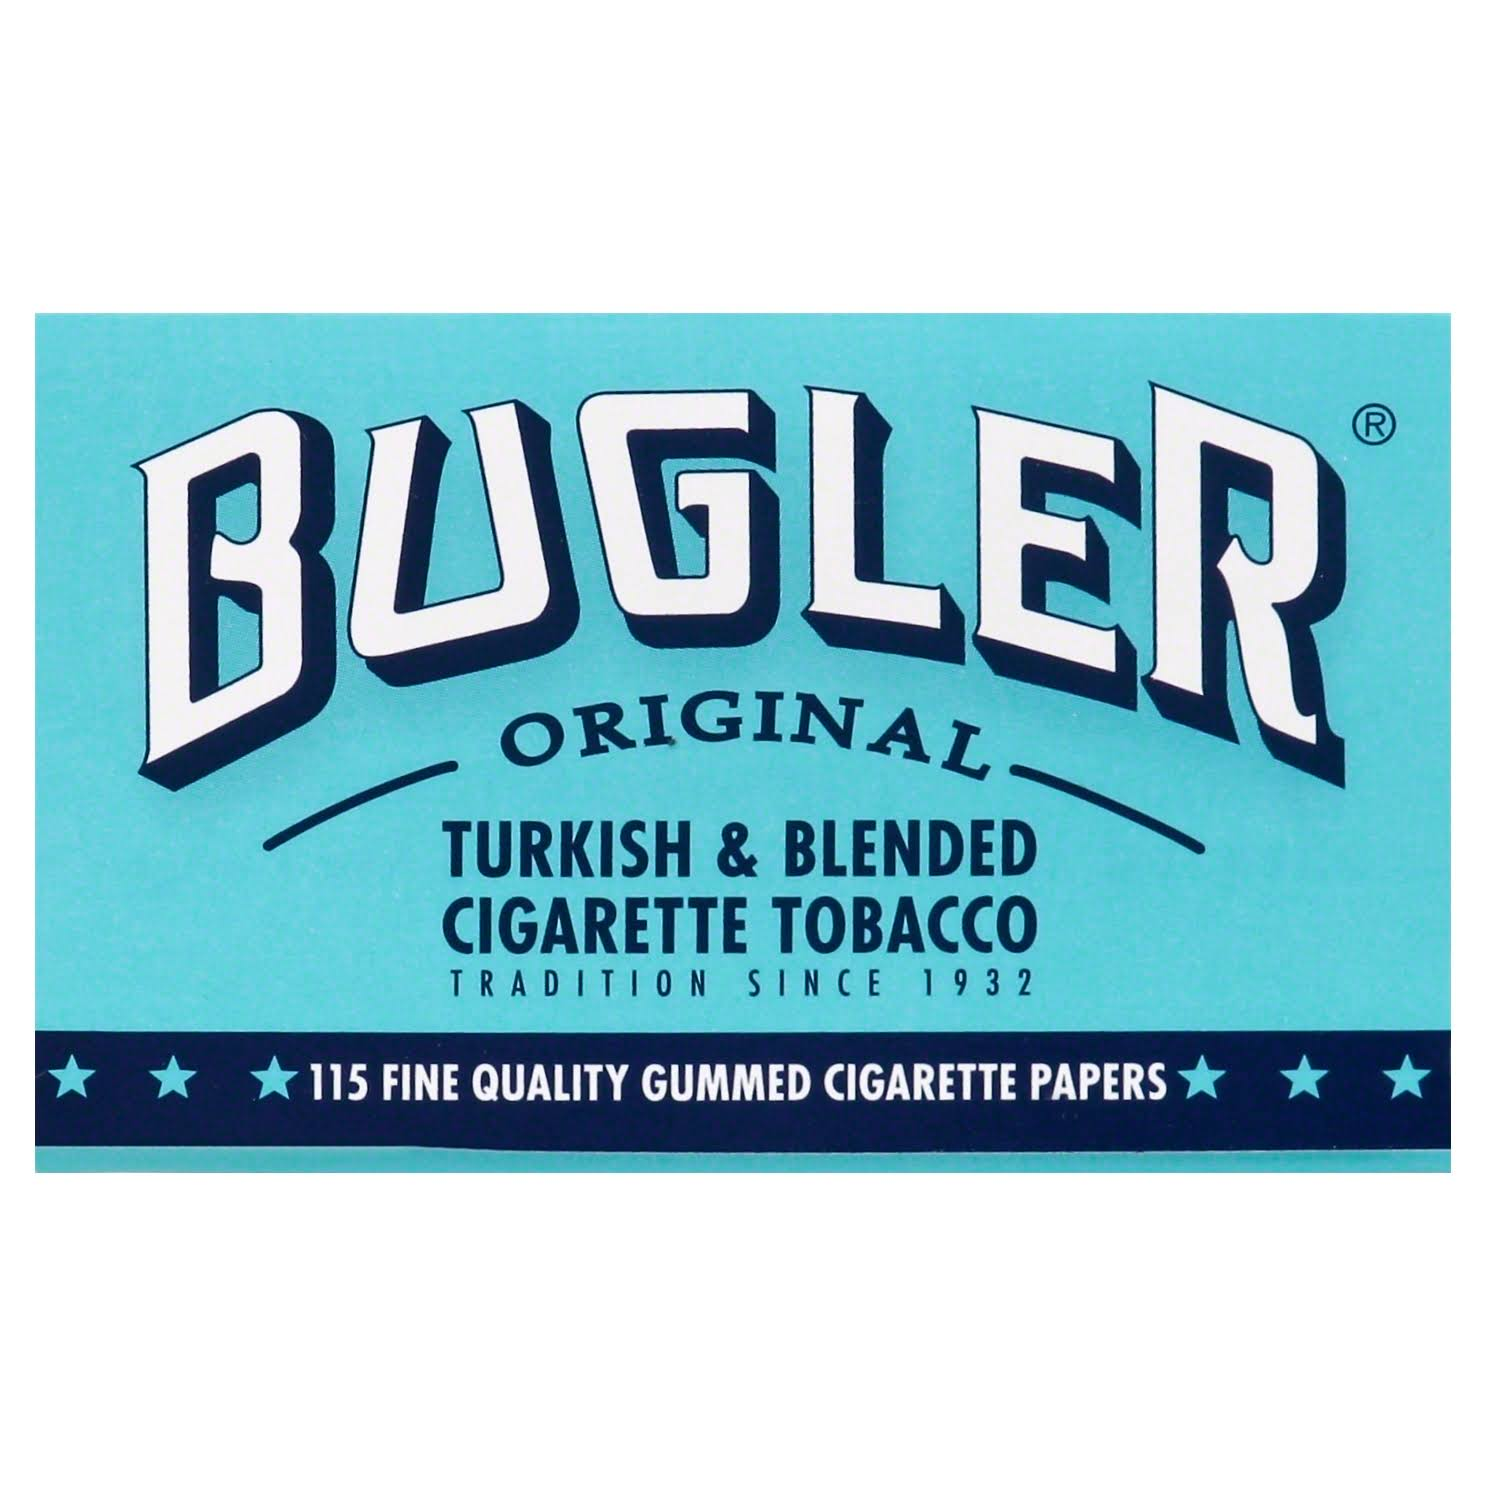 Bugler Papers, Cigarette, Fine Quality, Gummed, Original - 115 papers